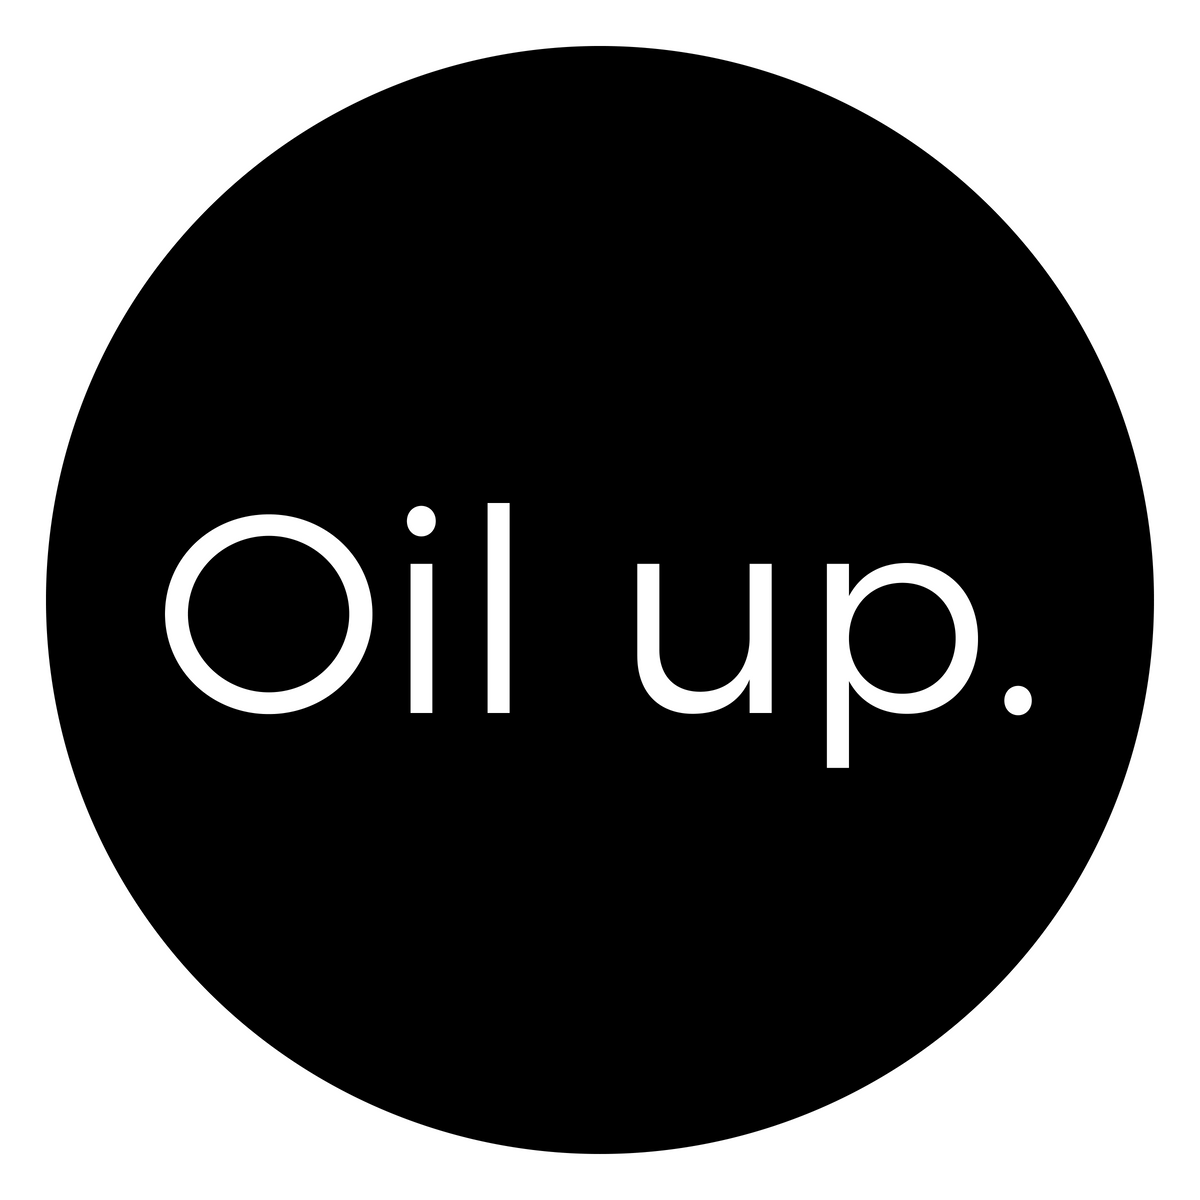 Oil up